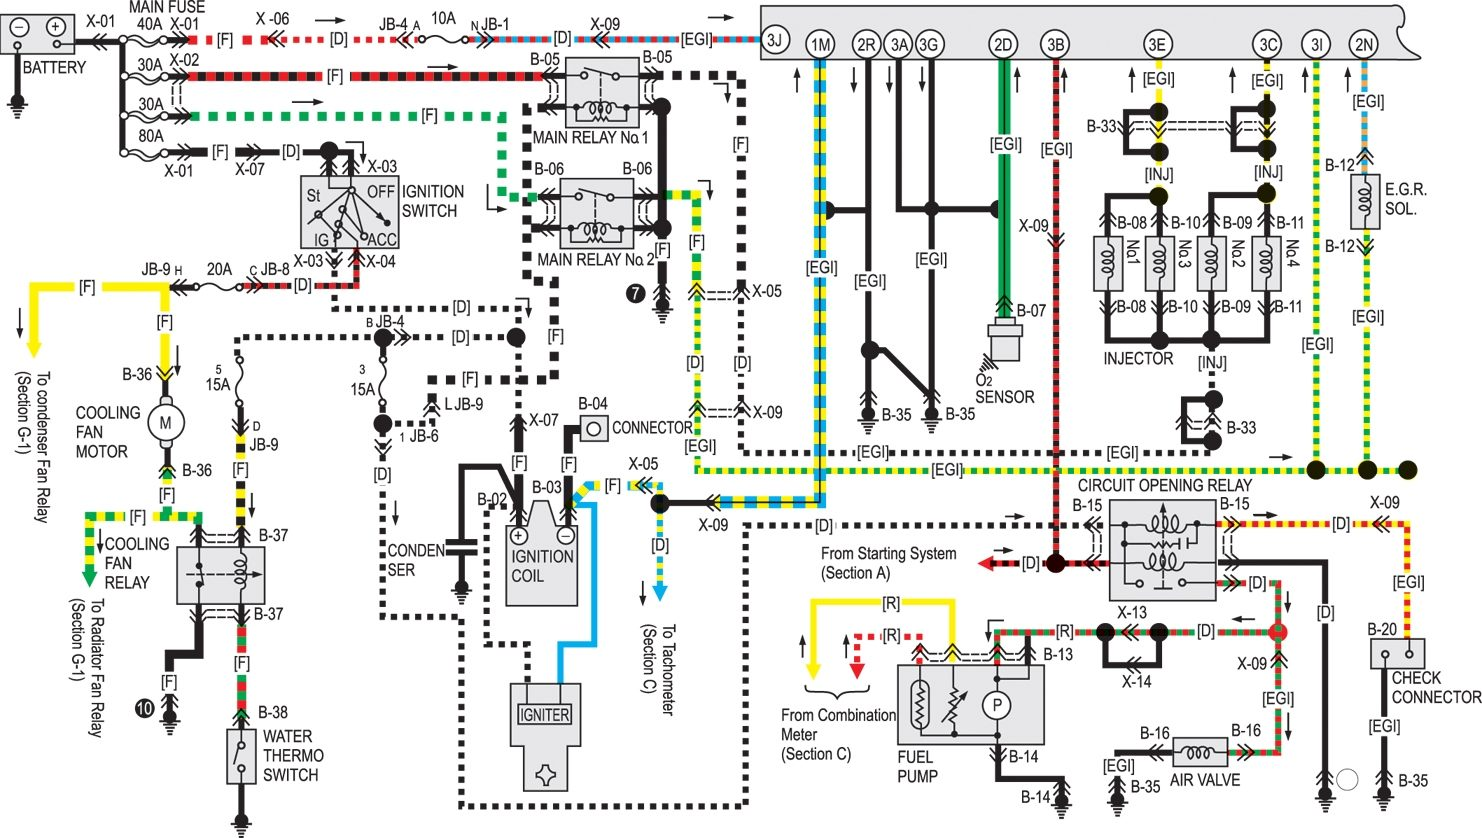 Mazda wiring diagram pdf wire center mazda 626 wiring diagram pdf 2002 mazda 6 wiring diagram pdf rh parsplus co mazda 6 2009 wiring diagram pdf mazda mx 6 wiring diagram pdf cheapraybanclubmaster Gallery